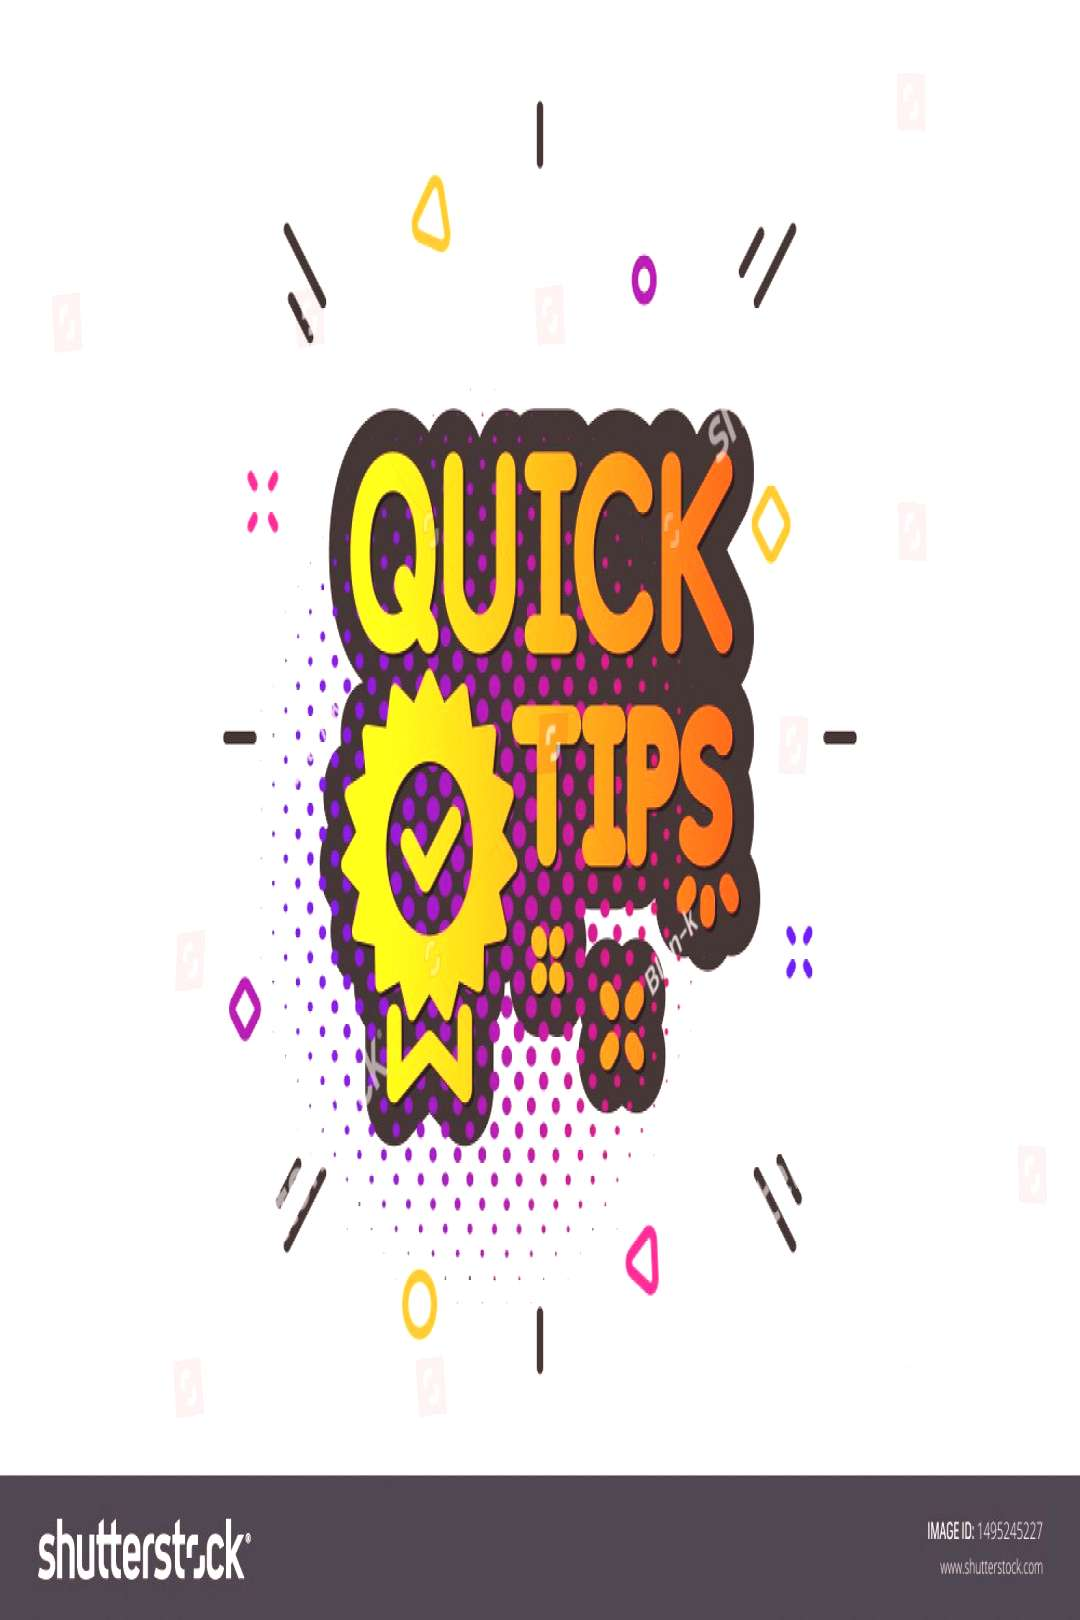 Helpful tricks sign. Halftone circles pattern. Quick tips icon. Tutorials with award medal symbol.